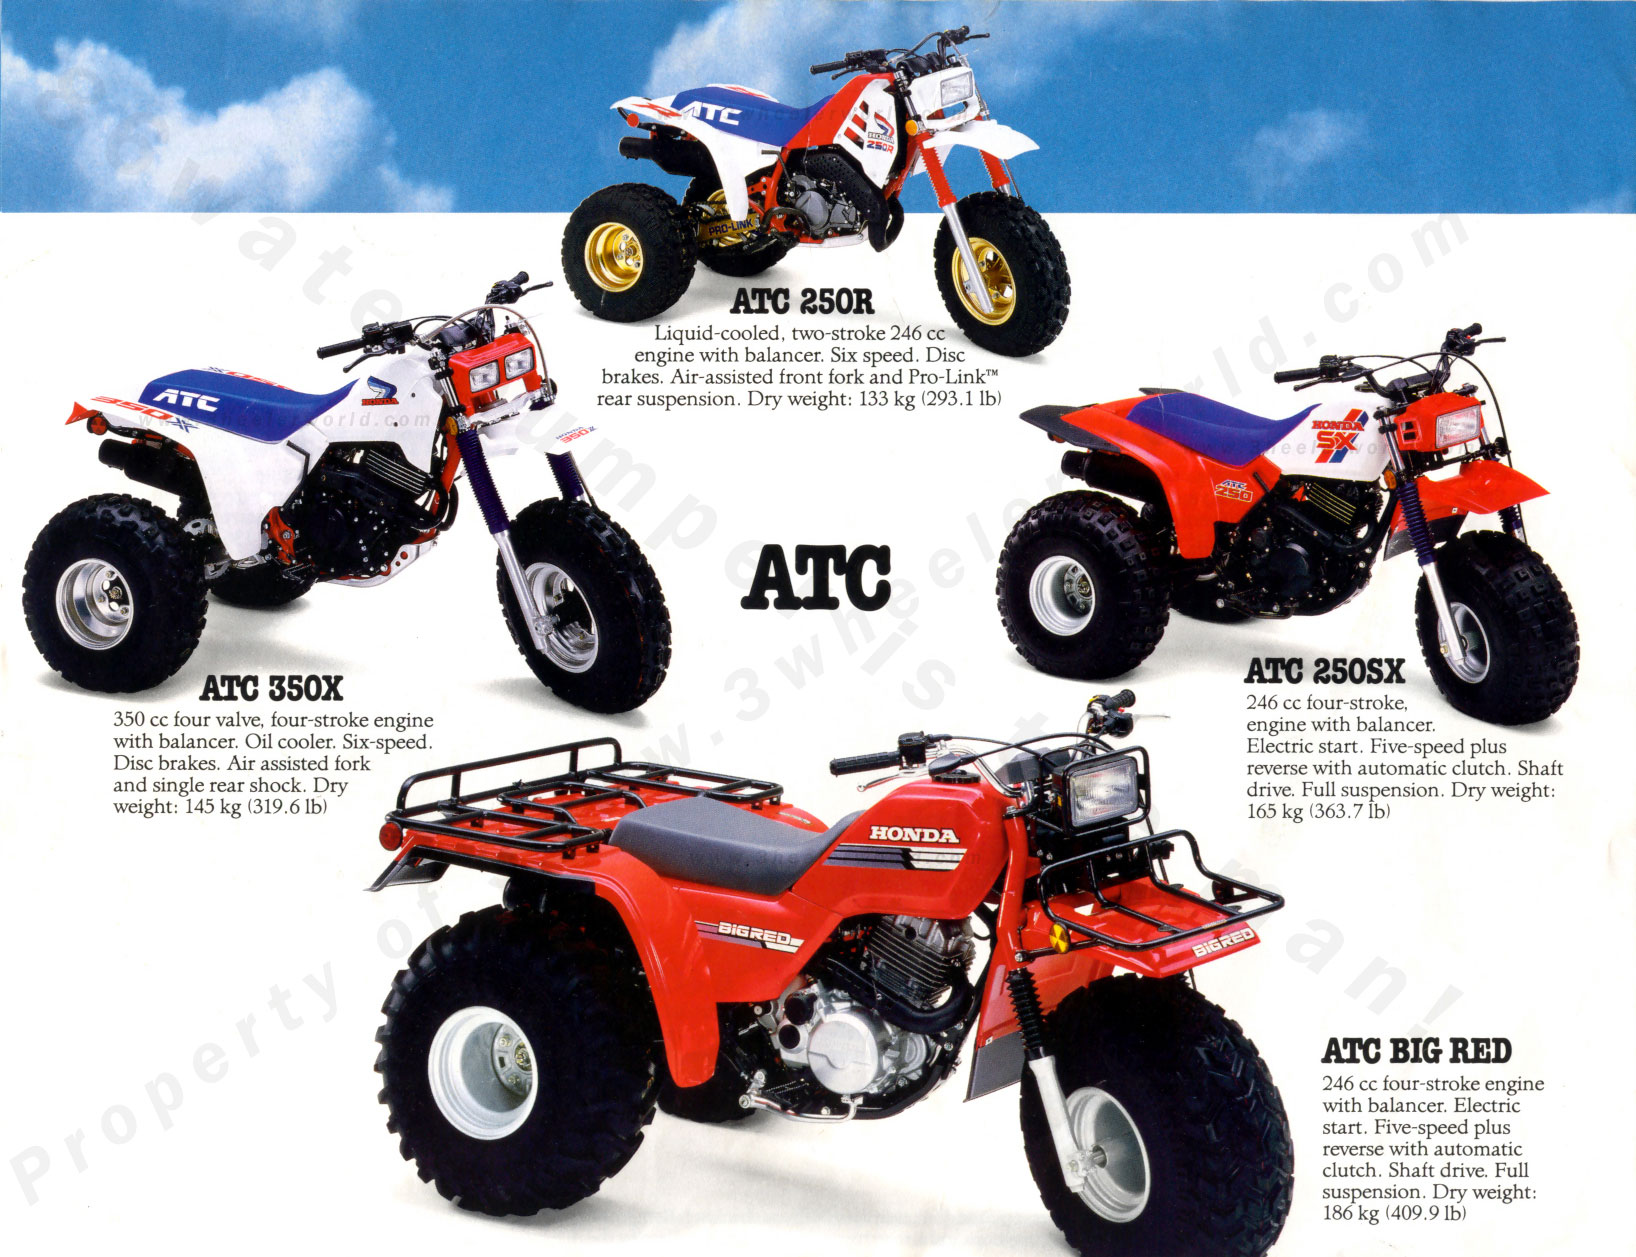 Four Wheelers For Sale >> 3 WHeeLeR WoRLD-Quest for the 87 ATCs